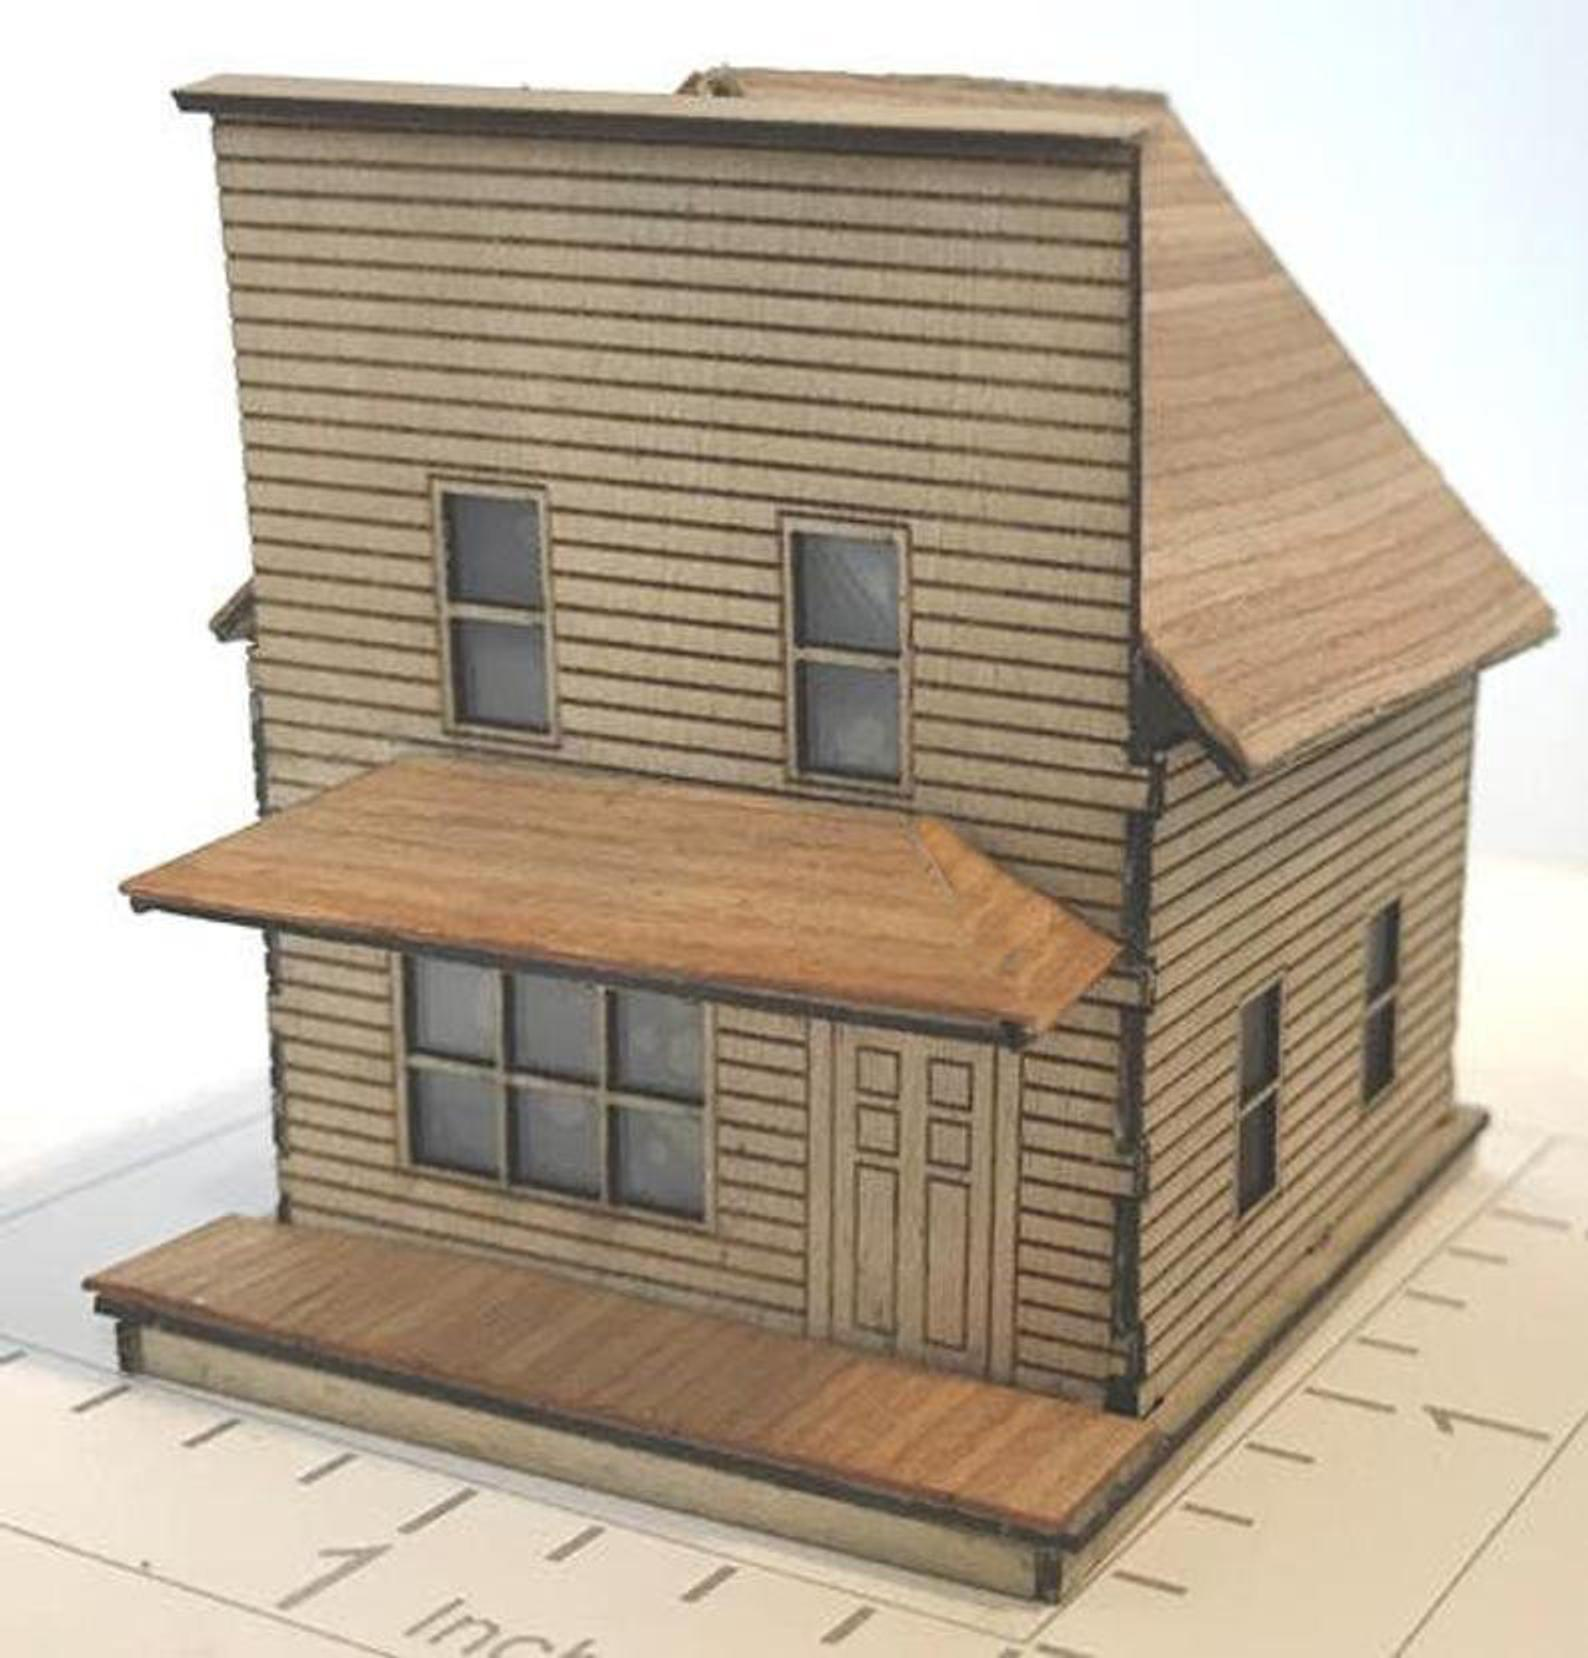 1886 Store With False Front/Porch Kit 1:144 MK005